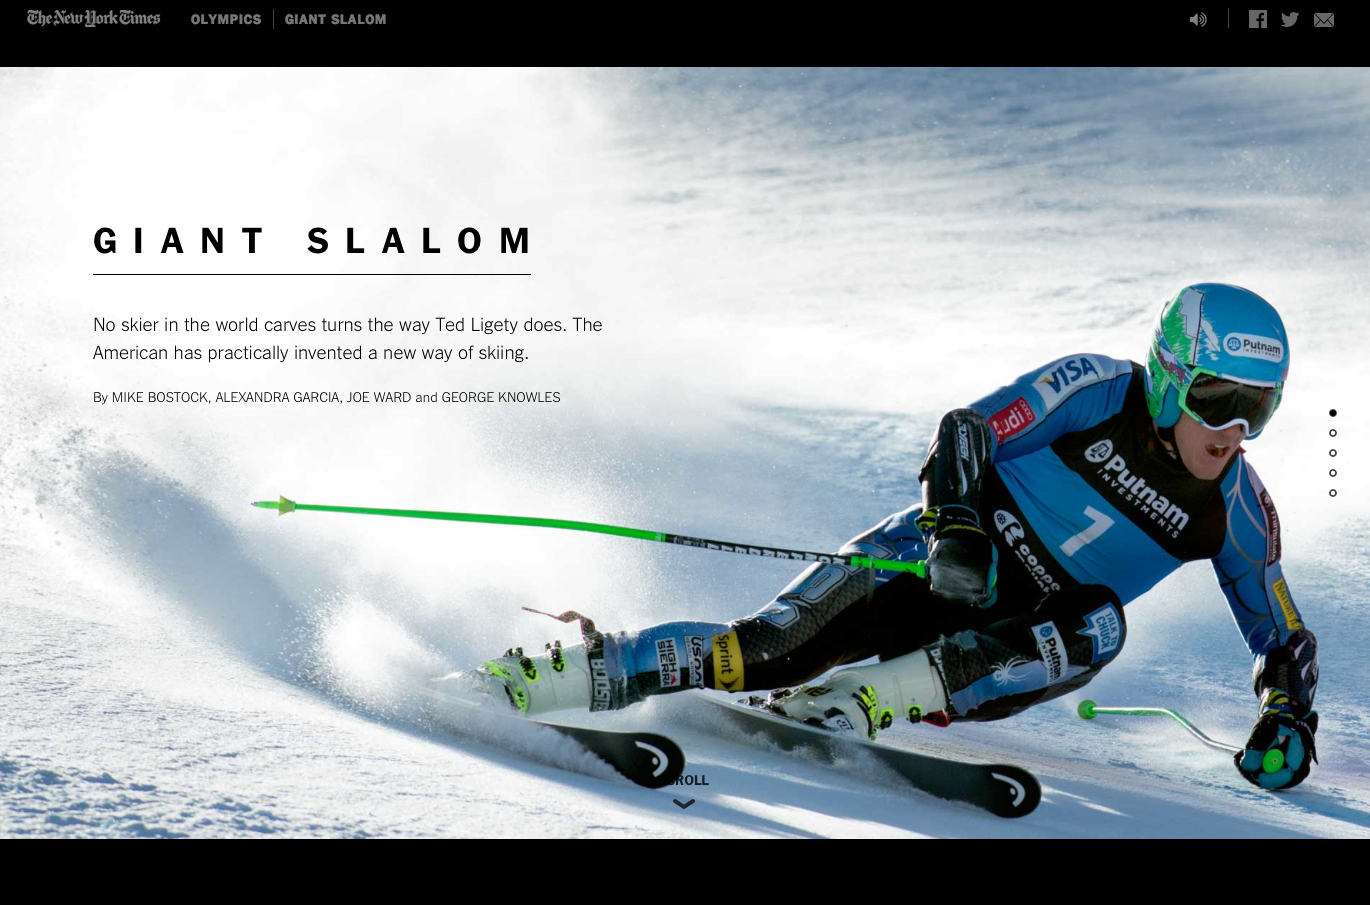 New York Times + animation web + ski = waaaouhhh